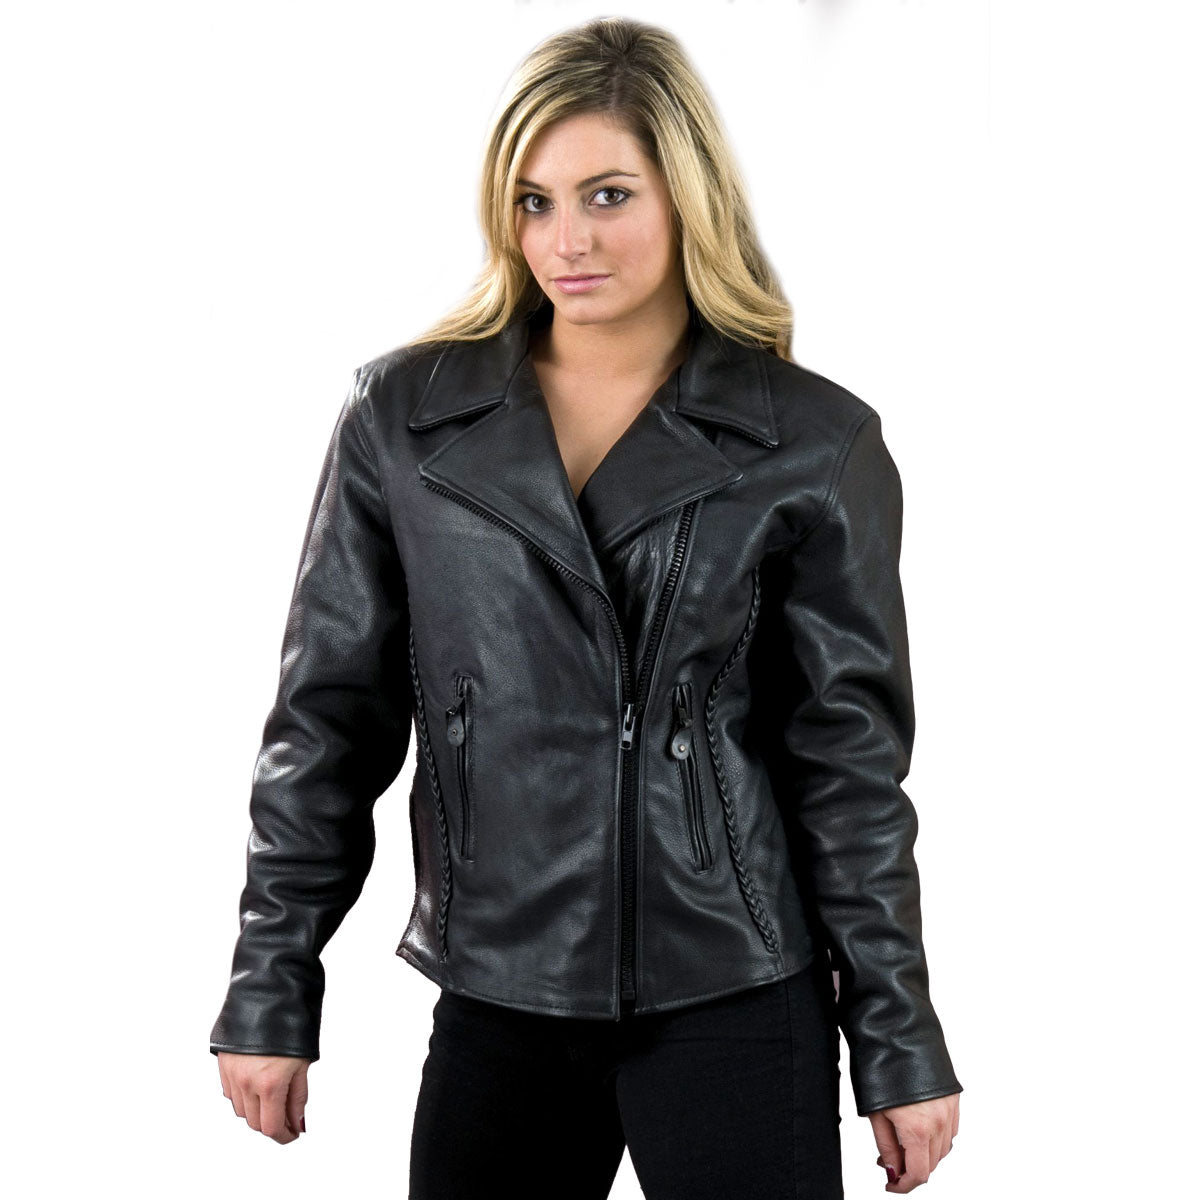 Milwaukee Leather SH7023 Ladies Black Leather Jacket with Studs and